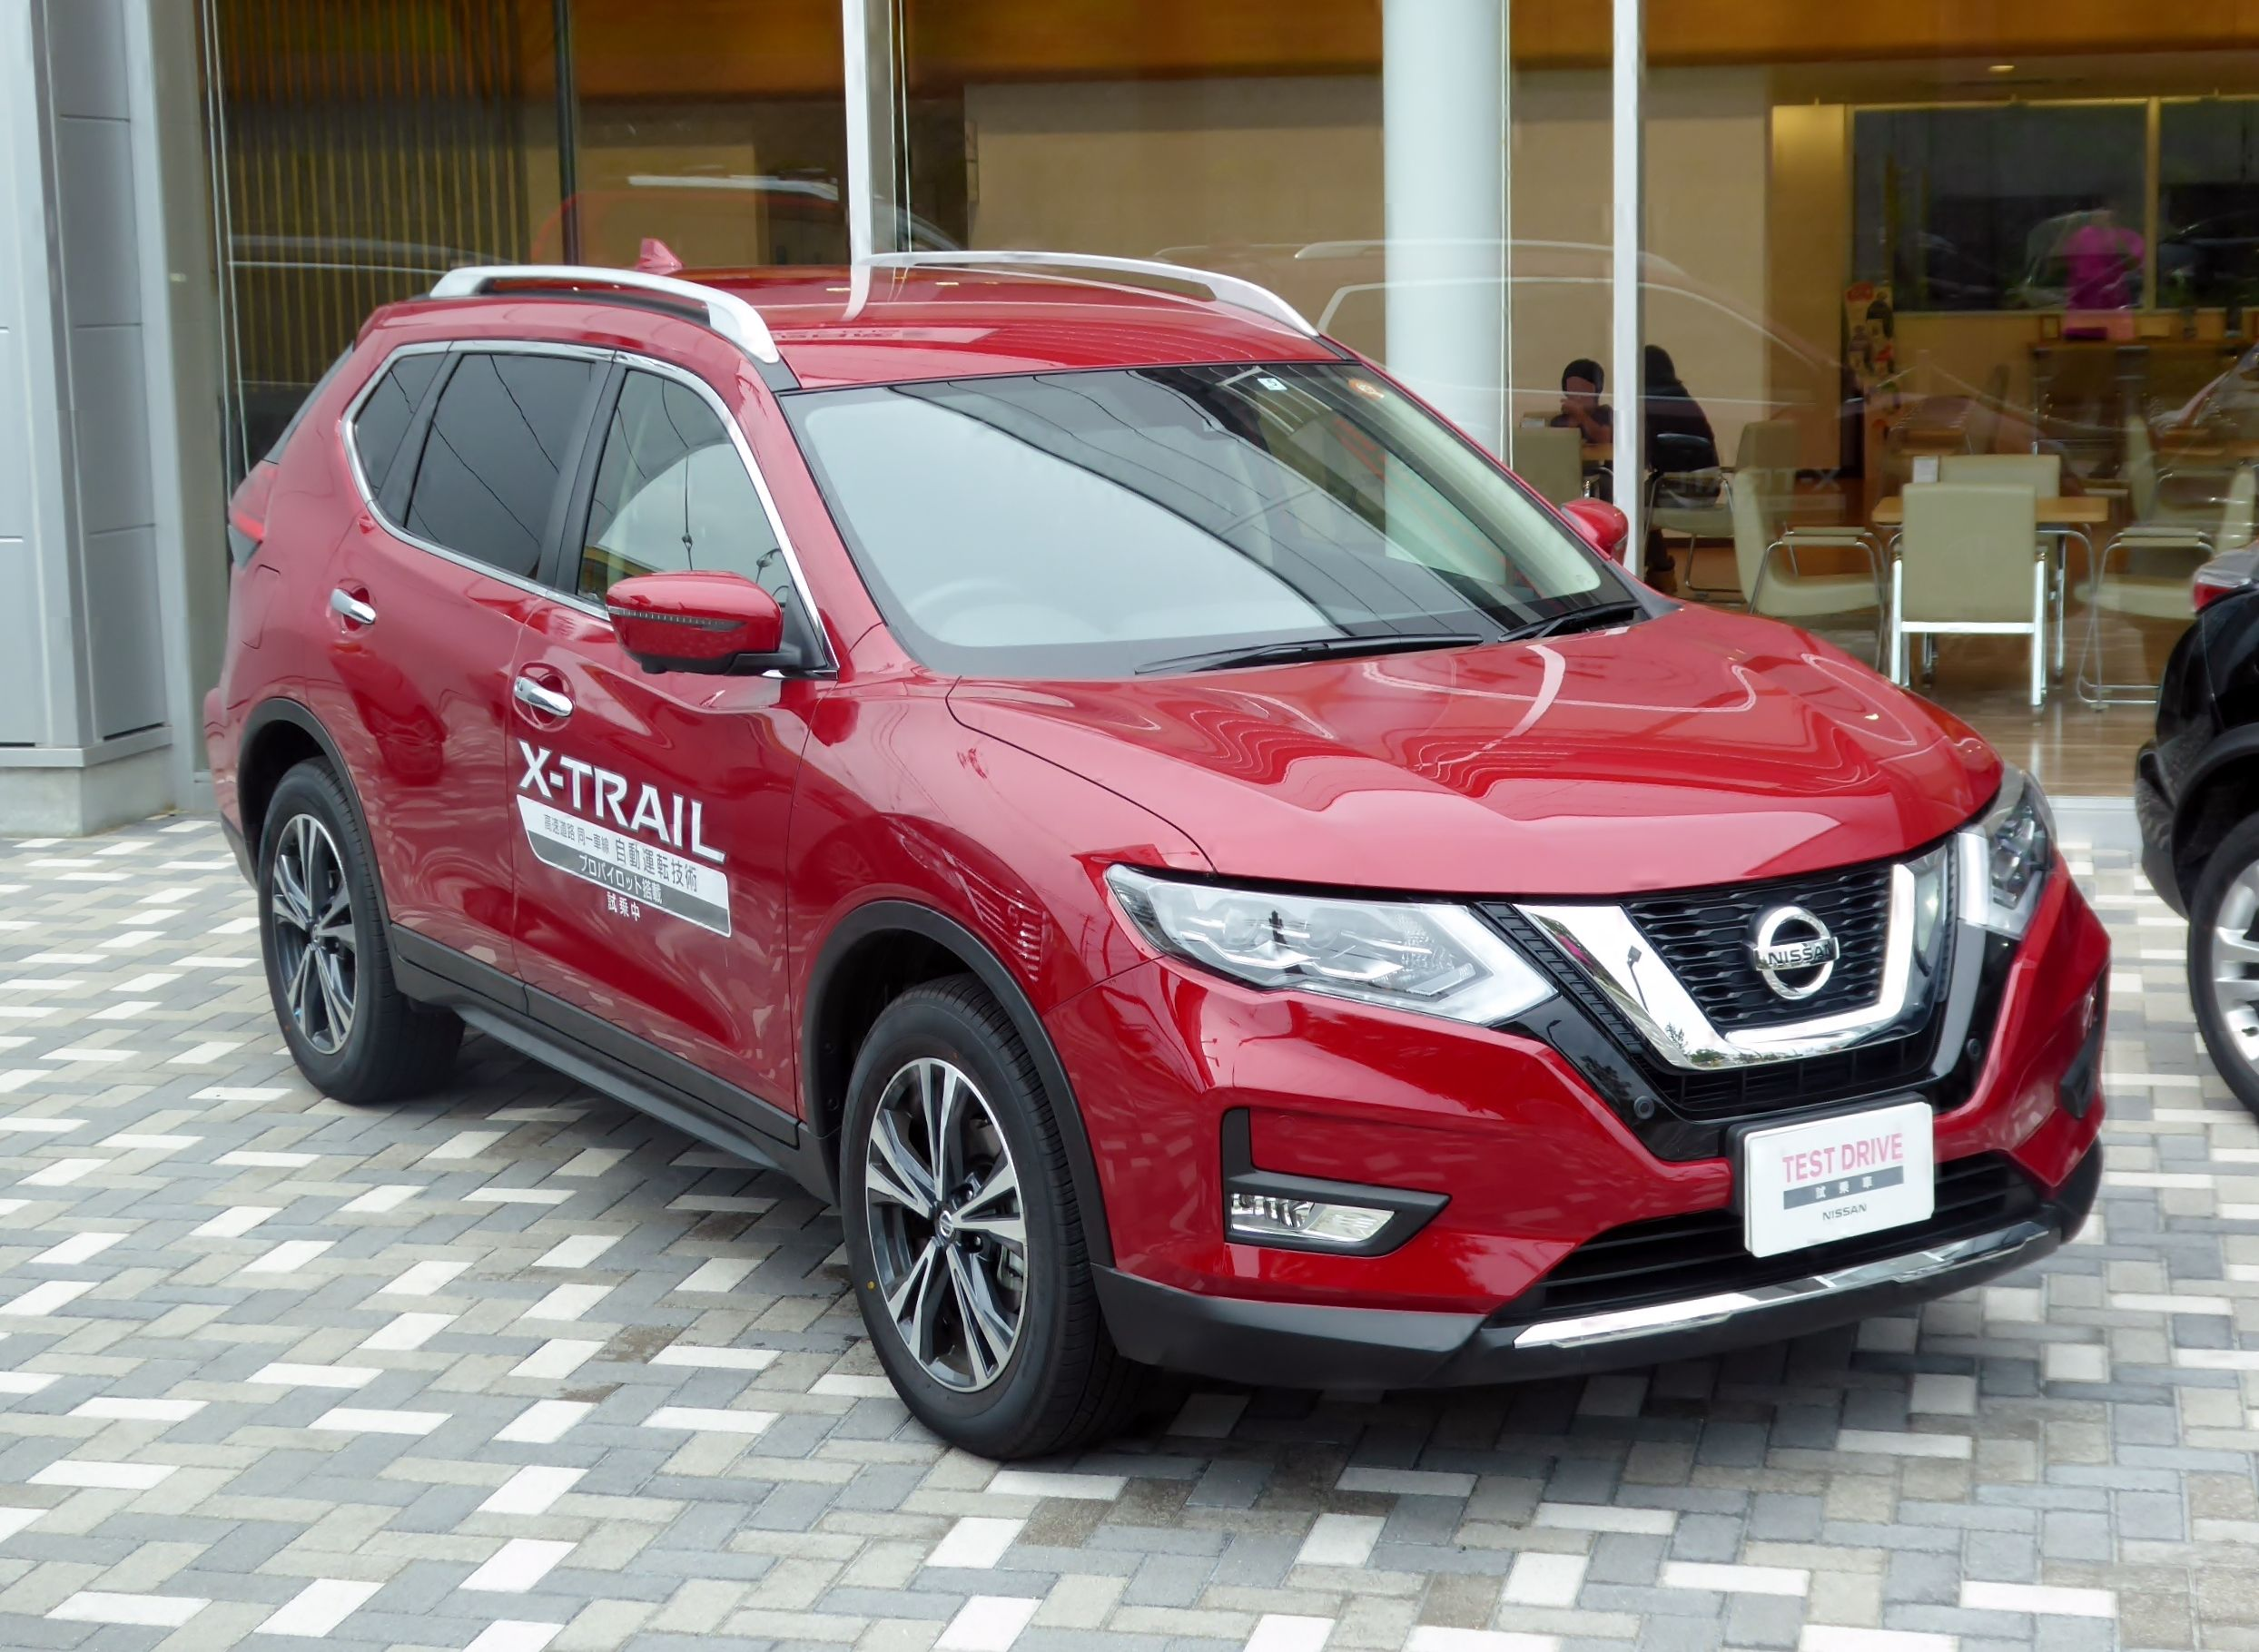 Nissan X Trail Wikipedia 39746023 Top Ten Reasons For Choosing French Doors Wood Doors Interior French Doors Doors